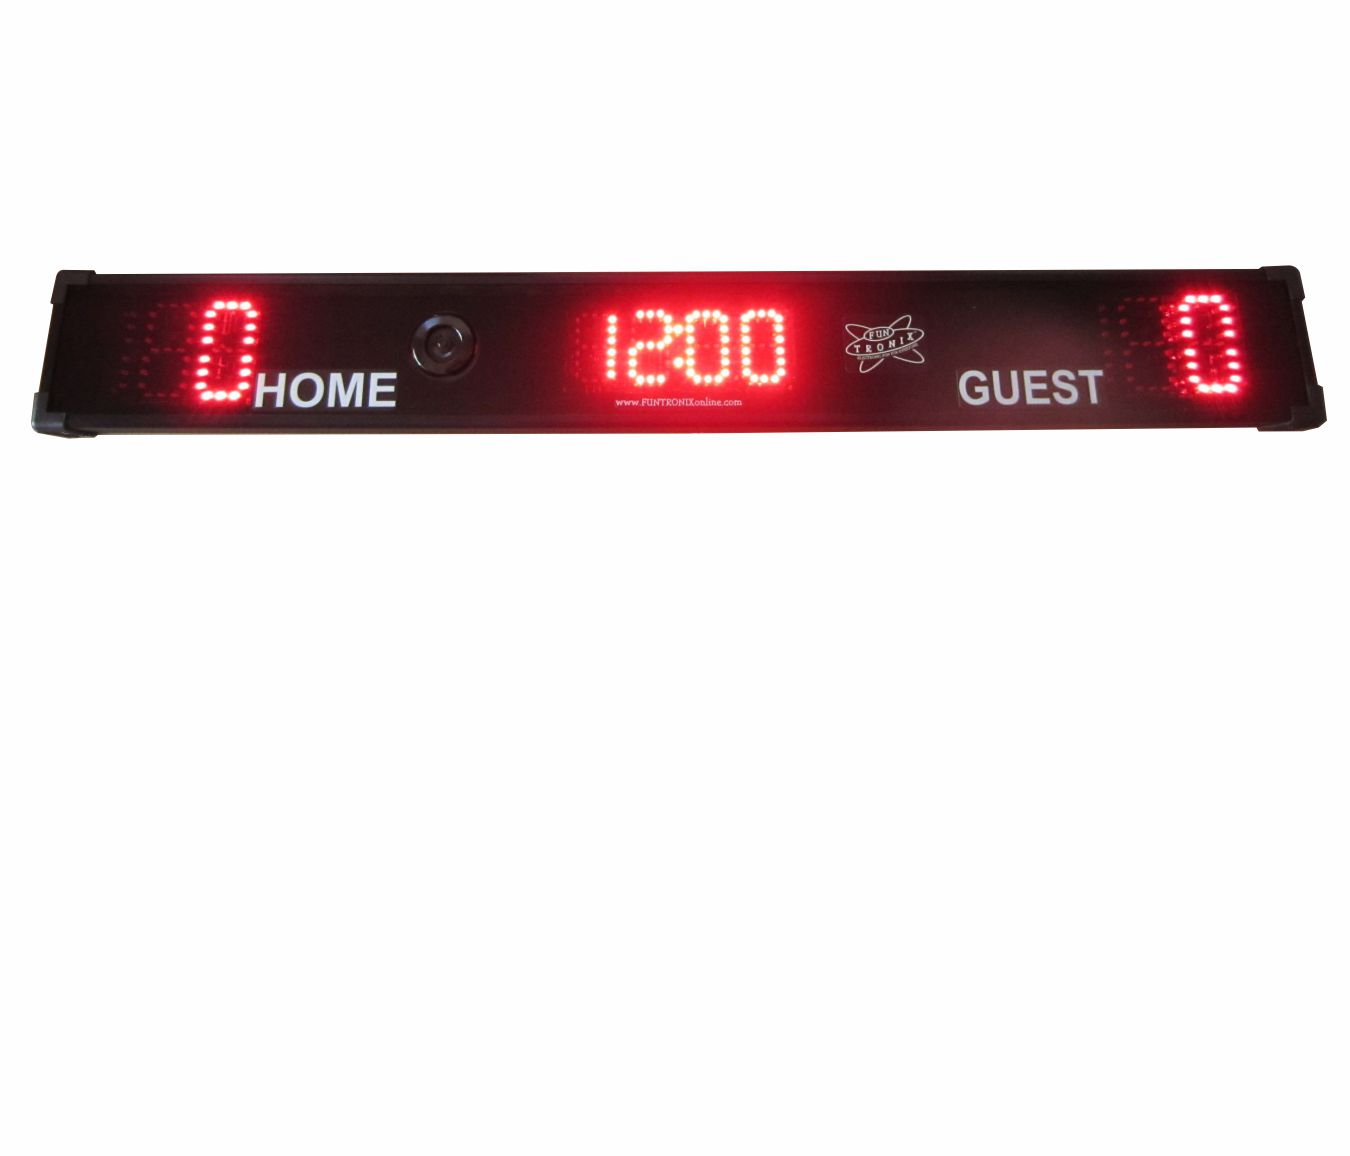 Low-Profile Scoreboard